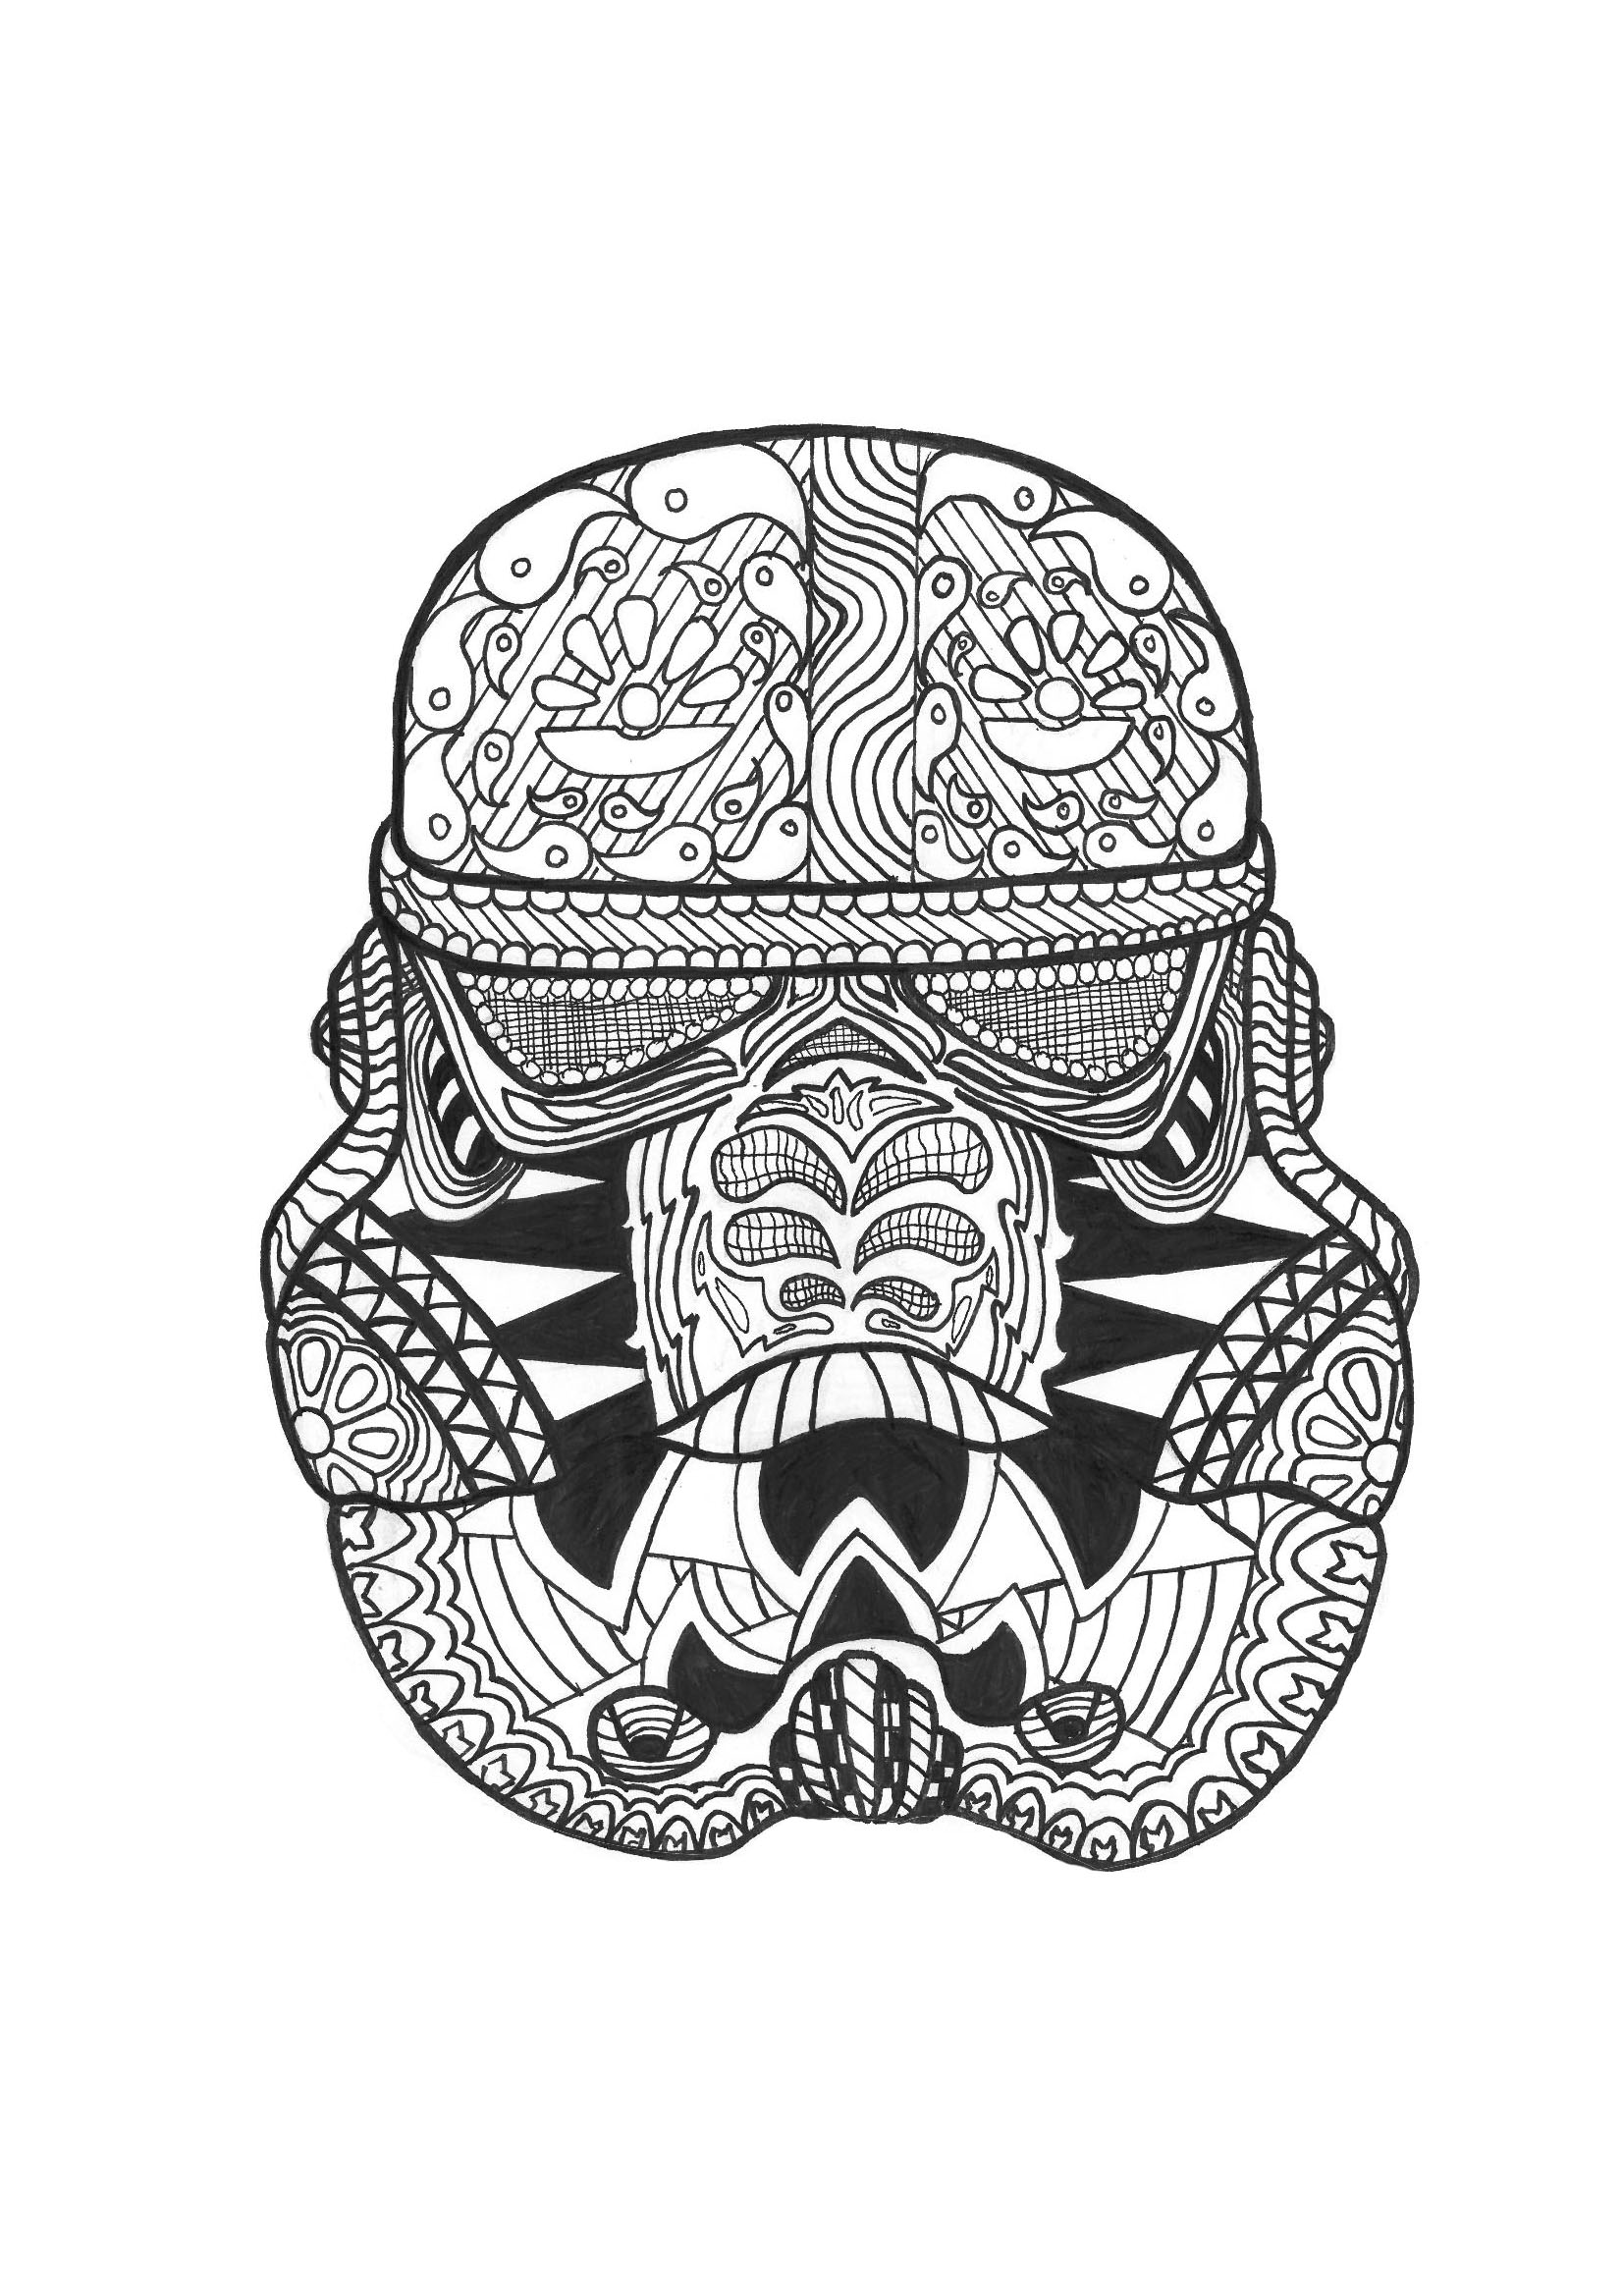 colouring pages for adults star wars star wars adult coloring pages coloring page star colouring adults pages star wars for